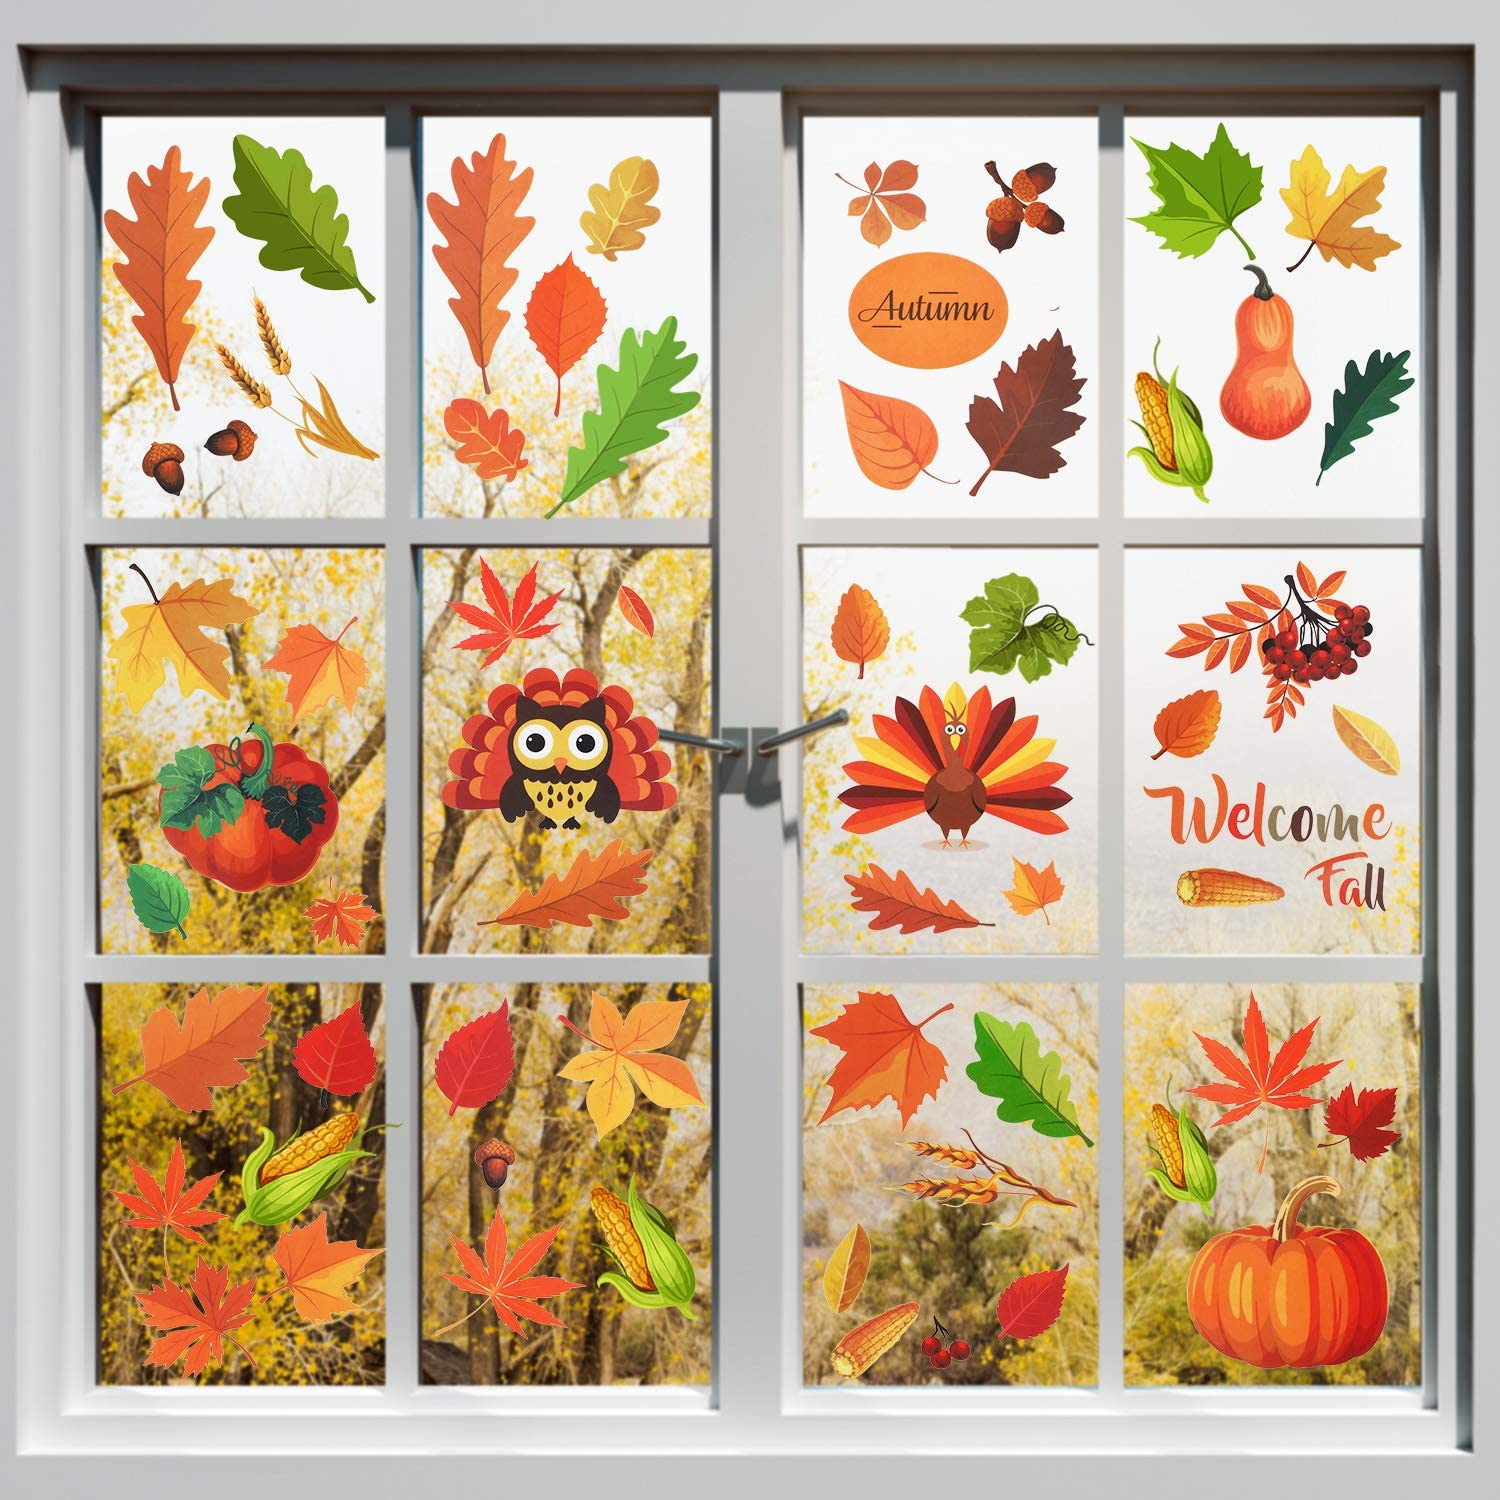 210 Pieces Fall Leaves Window Cling Stickers Thanksgiving Autumn Leaves Stickers Harvest Maple Acorn Window Decals for Autumn Holiday Party Decorations